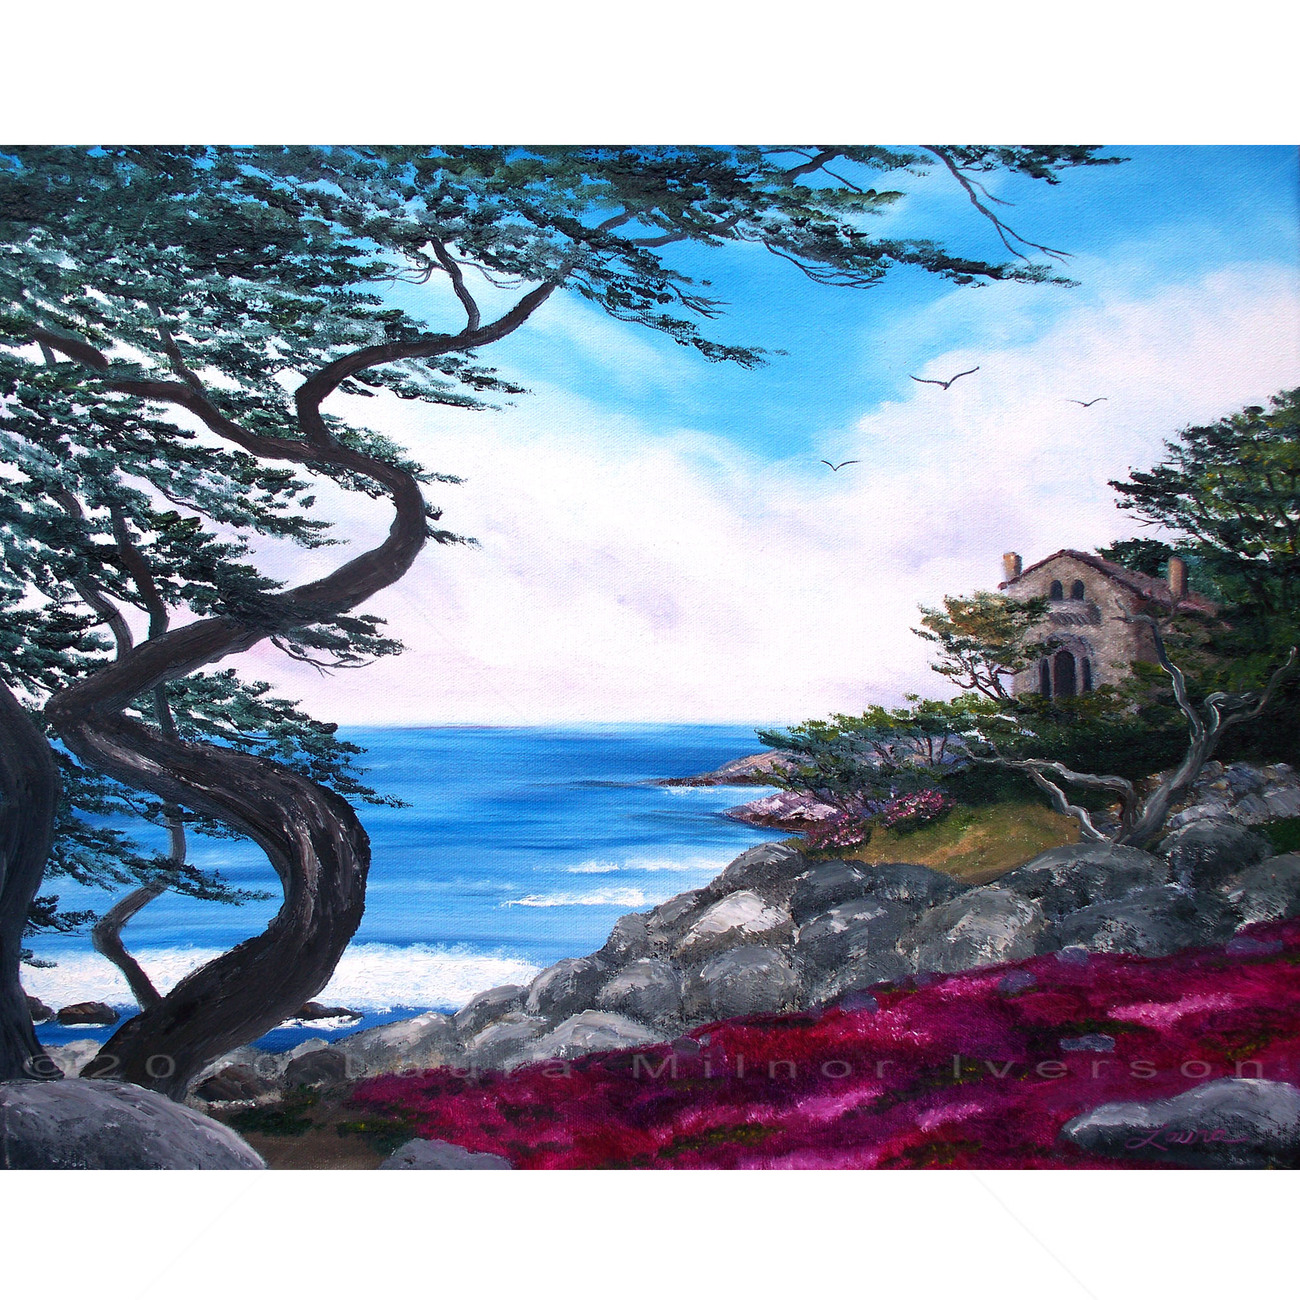 Carmel Monterey California Seascape Ocean Cypress Tree Original Oil Painting